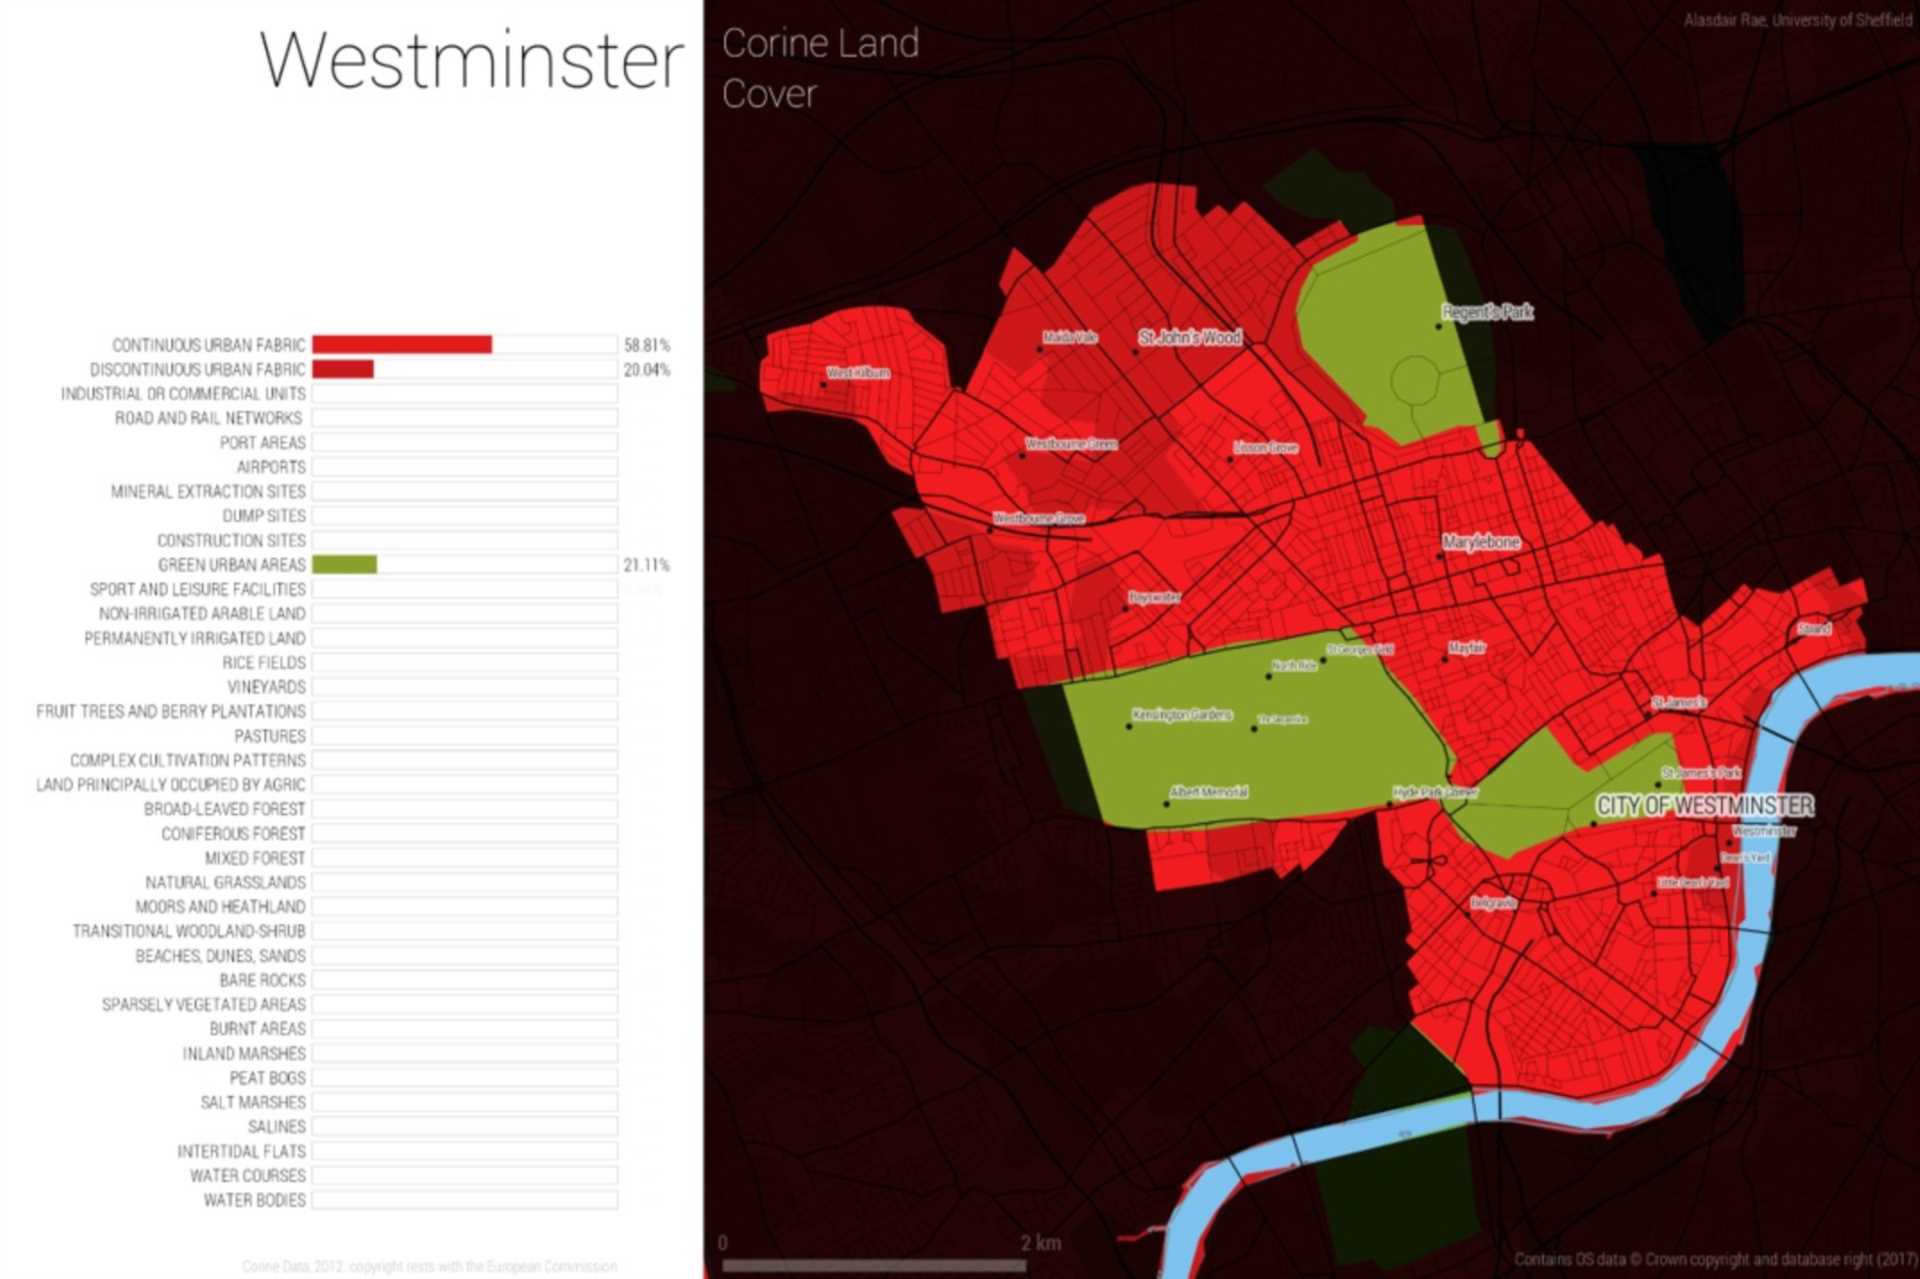 78.85% of Marylebone and Westminster is Built on ... Building Plot Dilemma or Not?